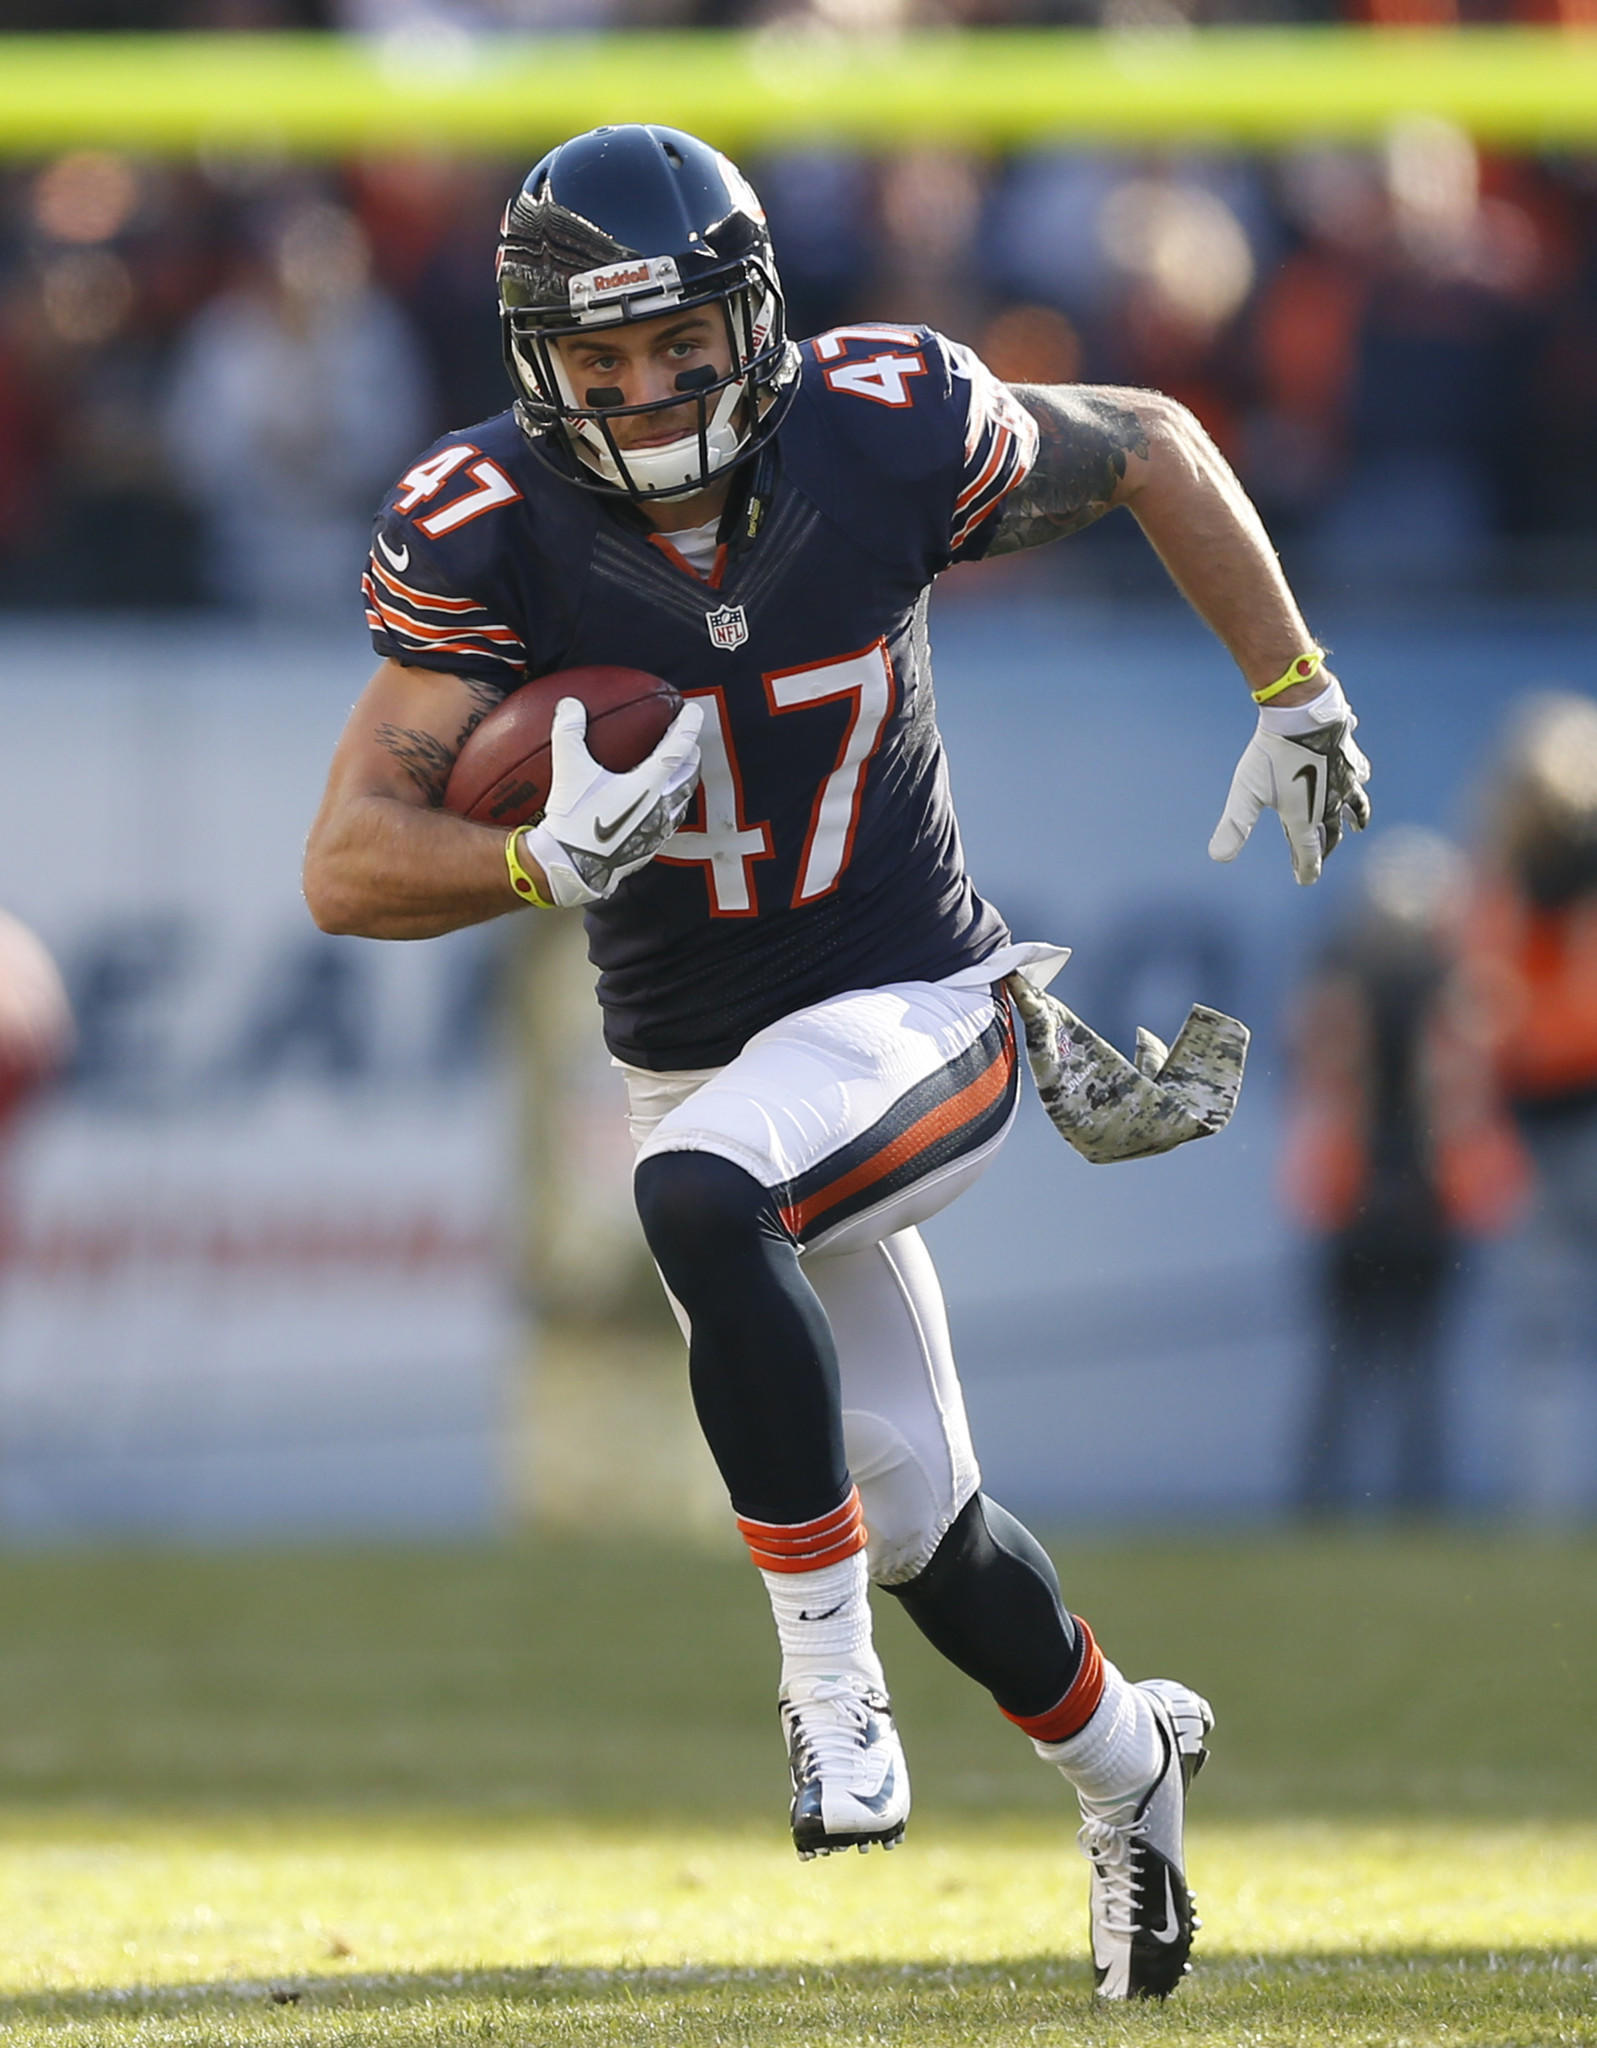 Chris Conte will be fighting to retain his starting safety job in 2014.